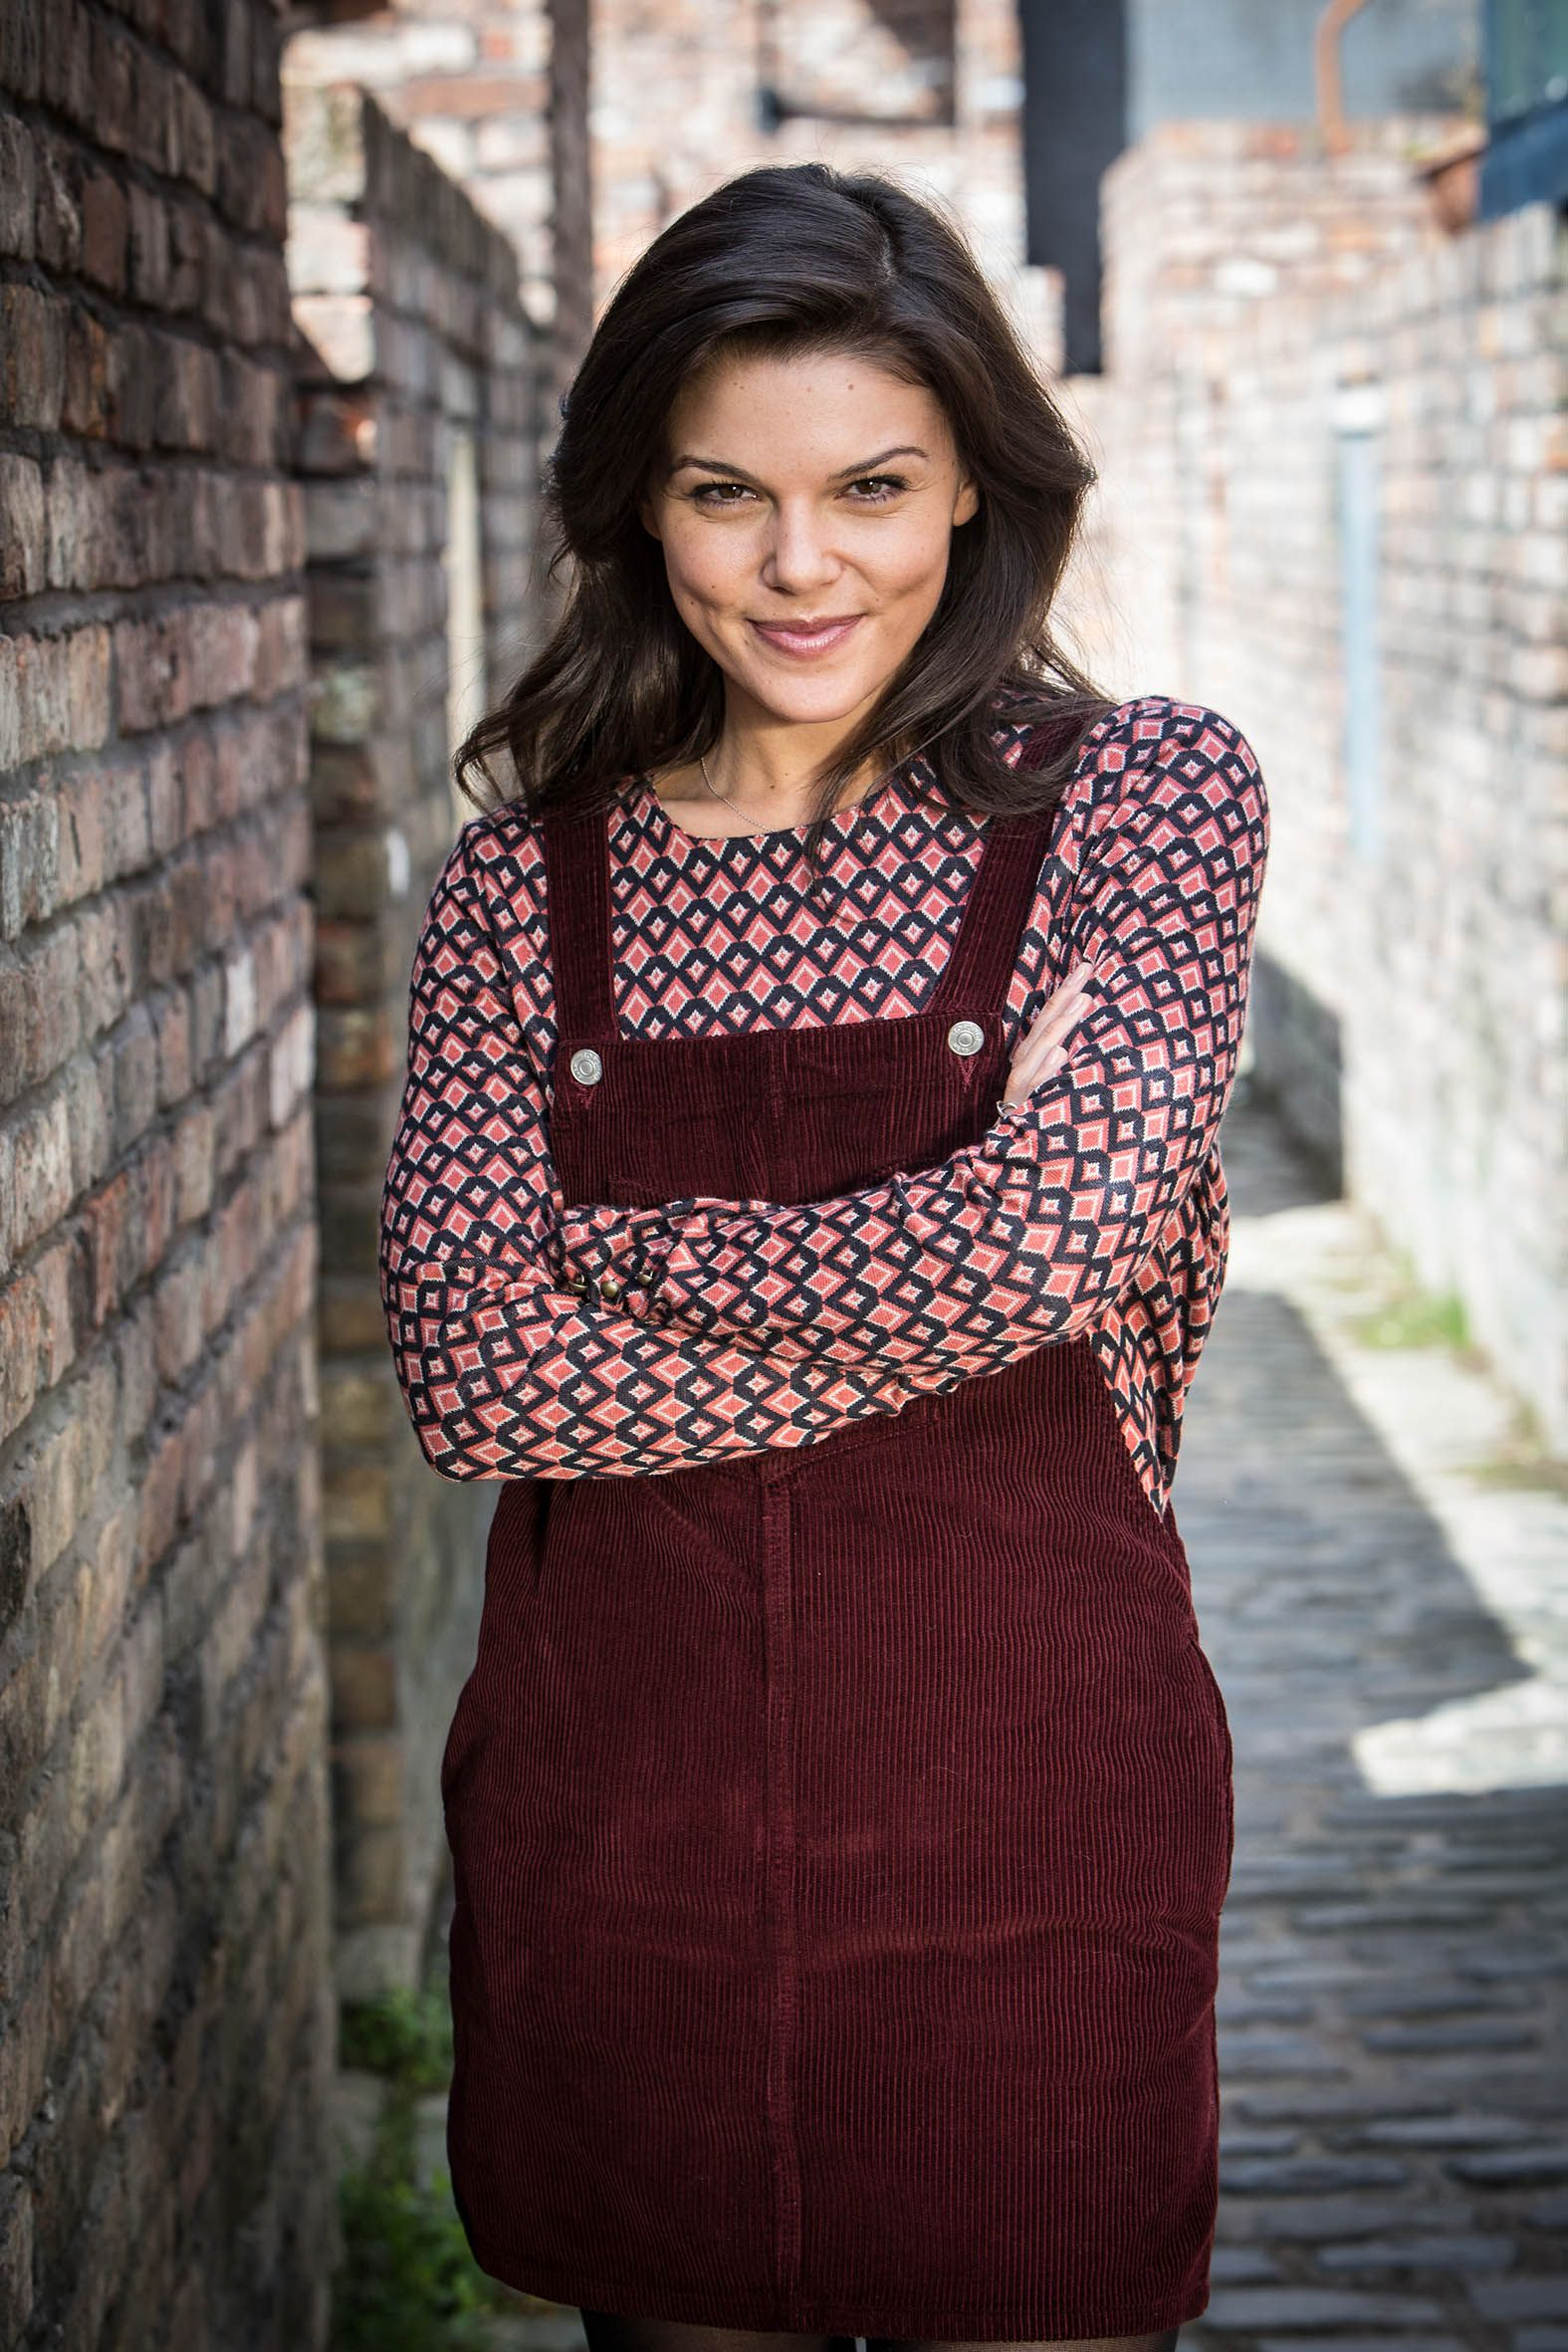 Coronation Street says goodbye to Kate Connor as she departs the cobbles